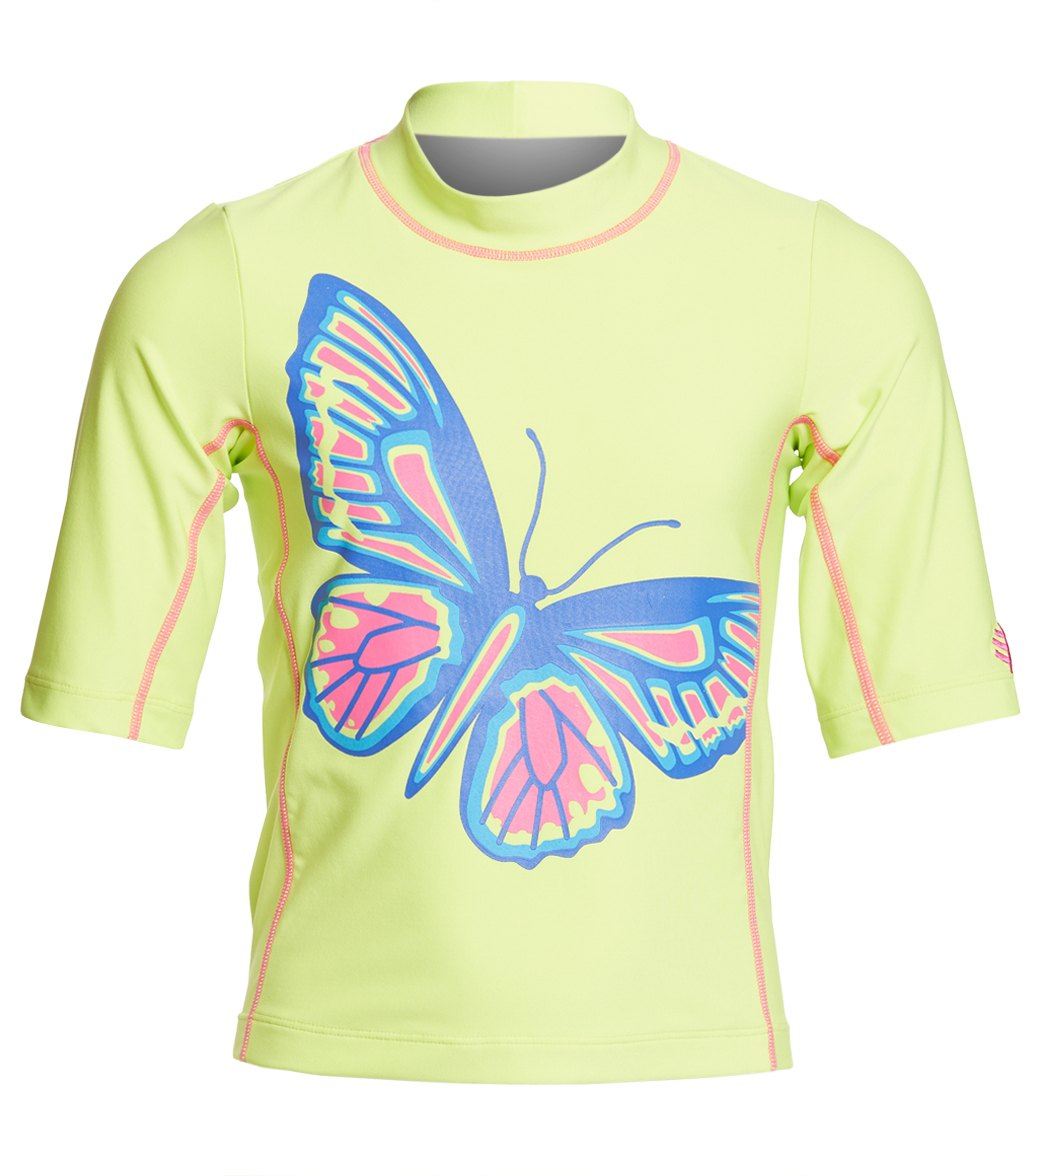 c538d881428ae Coolibar Girls' UPF 50 Printed Short Sleeve Surf Shirt at SwimOutlet.com